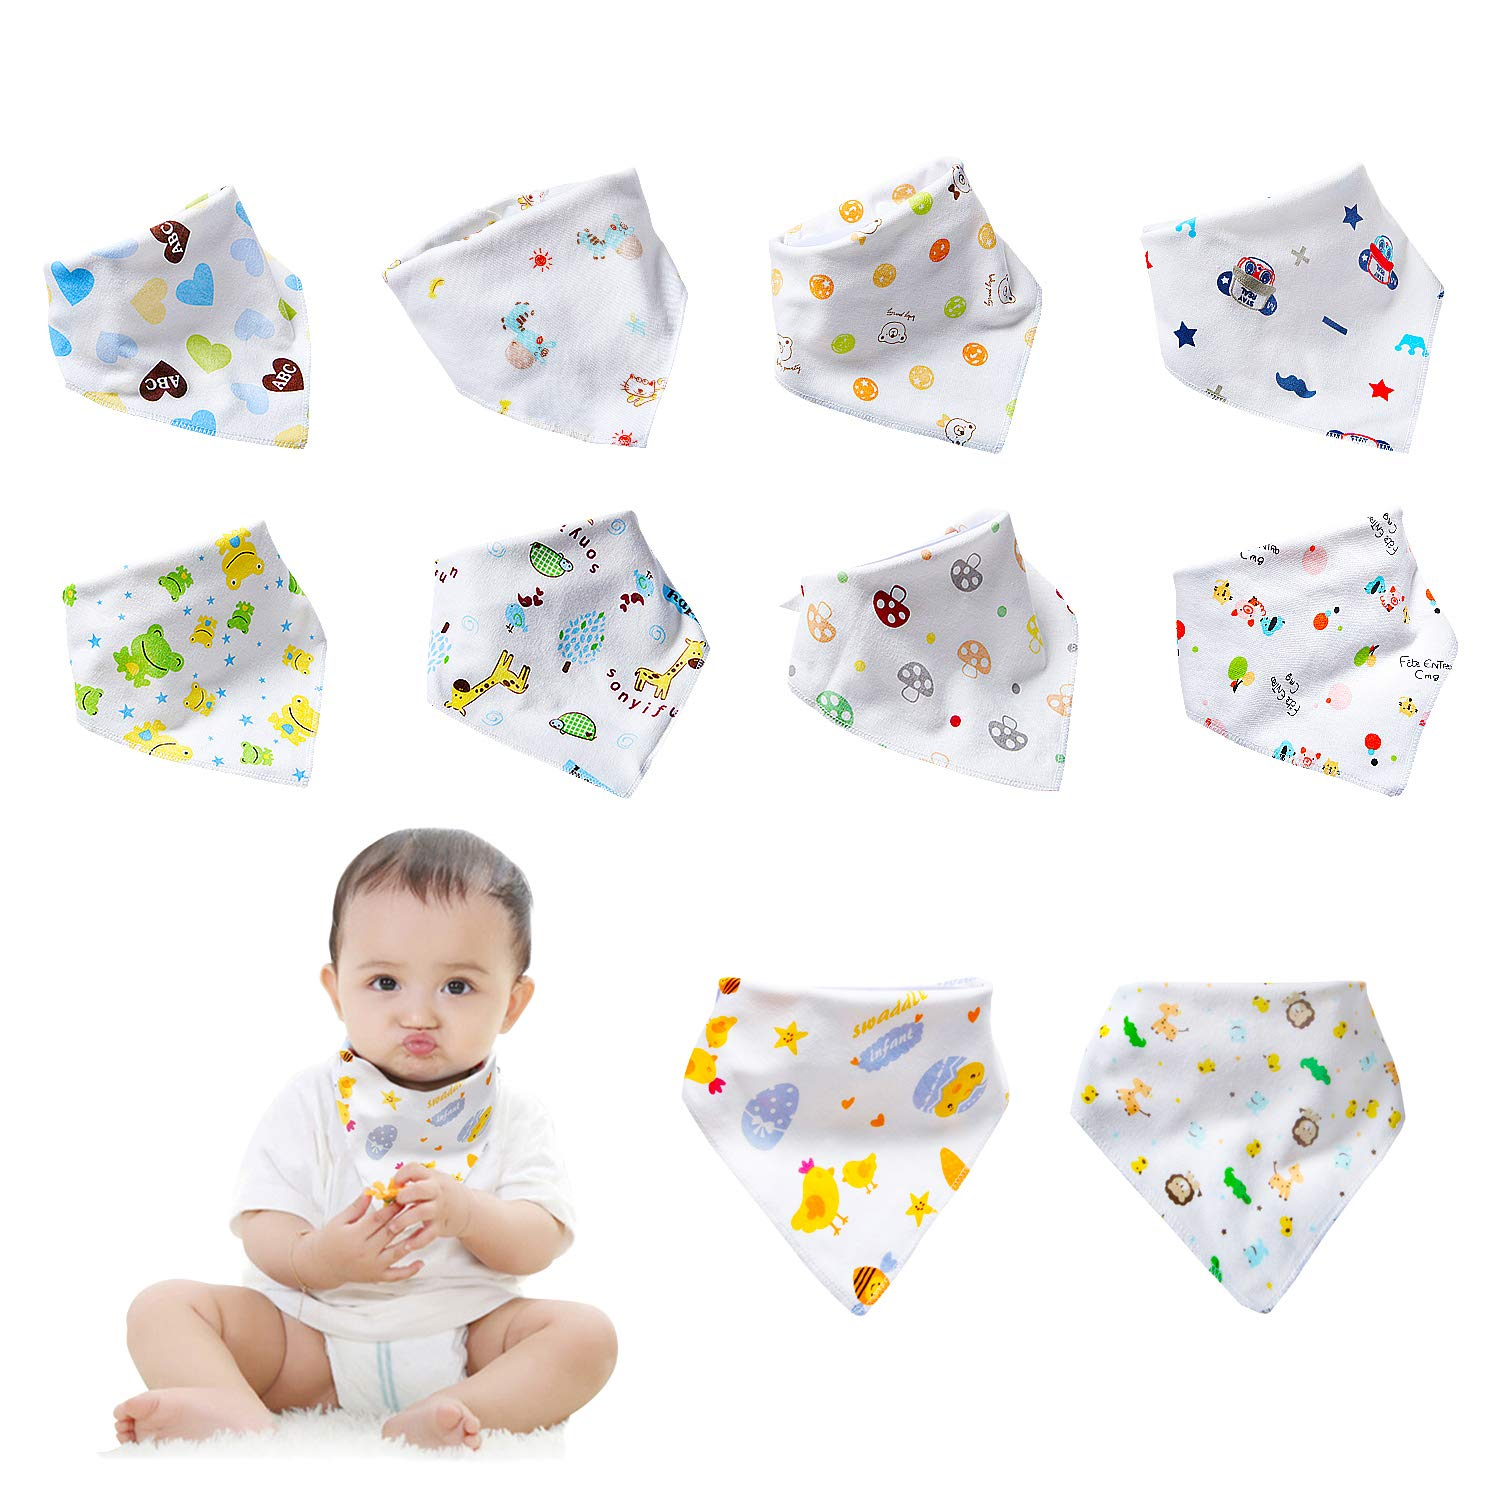 【Neutral B】labebe 10-Pack Bandana Bib, 100% Cotton Drool Bib with 2-Sided Printed for Unisex, Baby Bib Unisex/Toddler Bib/Newborn Bib/Drooling Bib/White Bib/Drool Bandana/Baby Bib Bandana/Birthday Bib